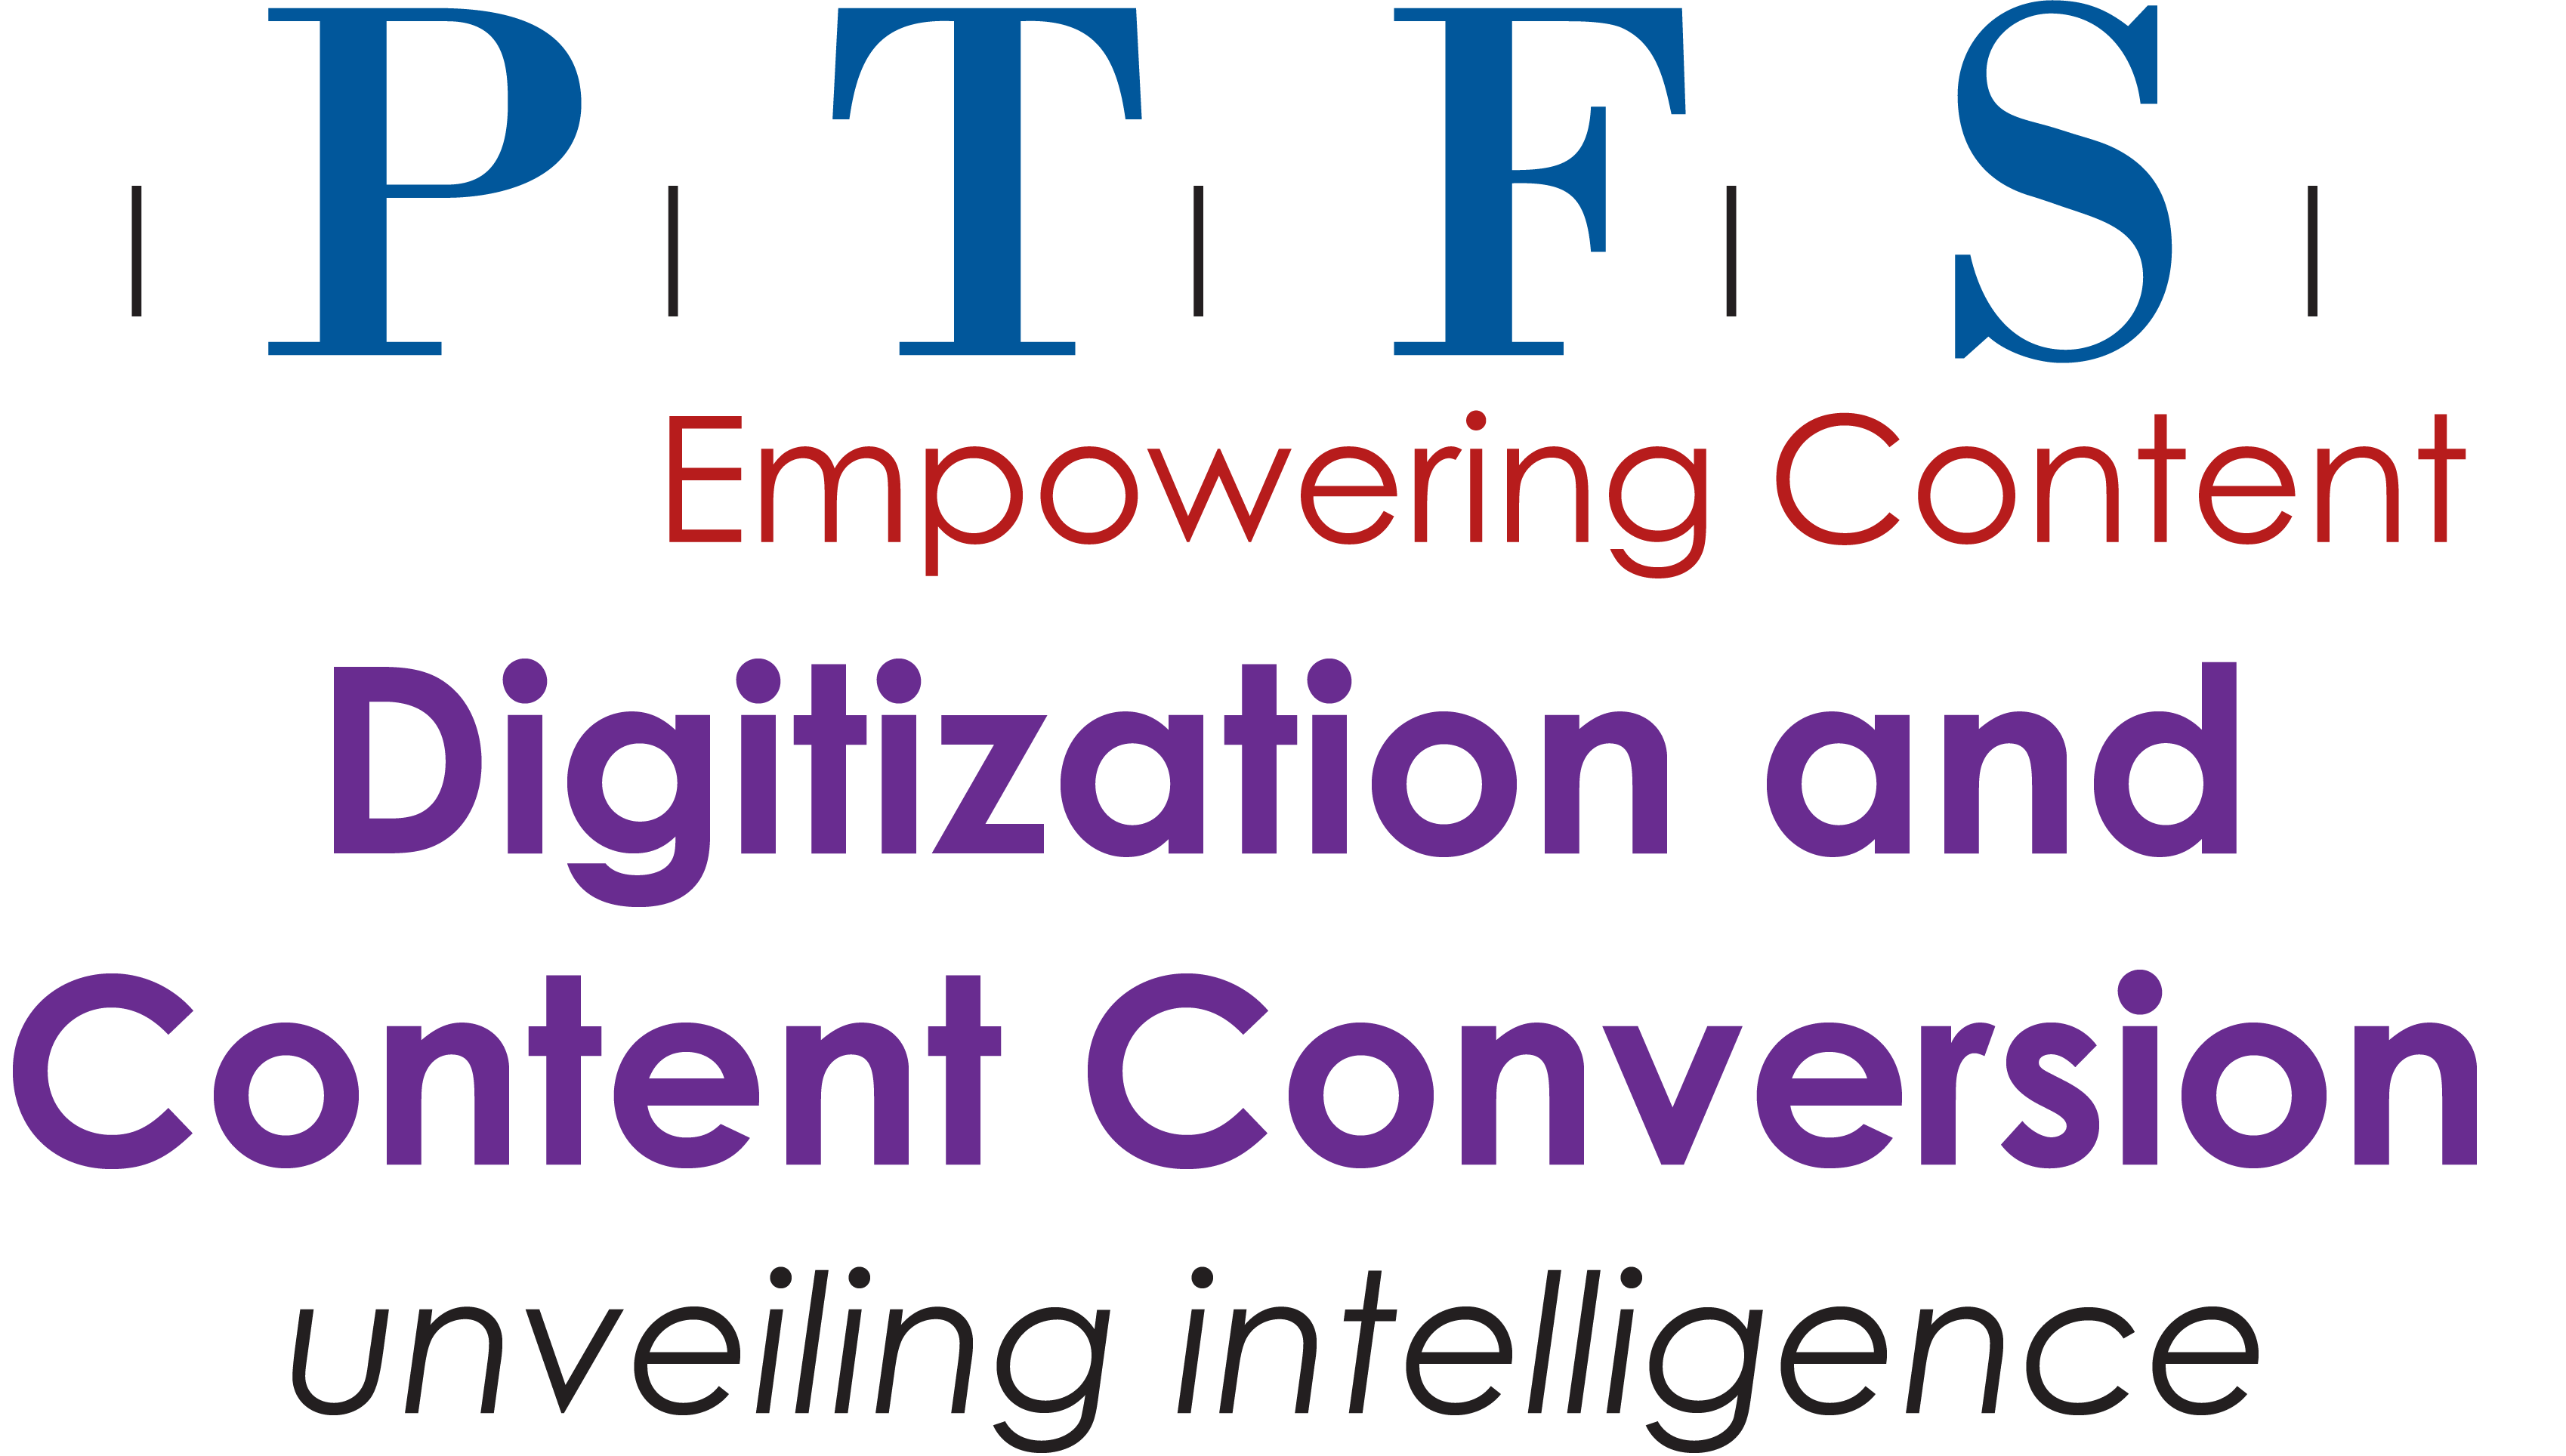 PTFS Digitization Logo